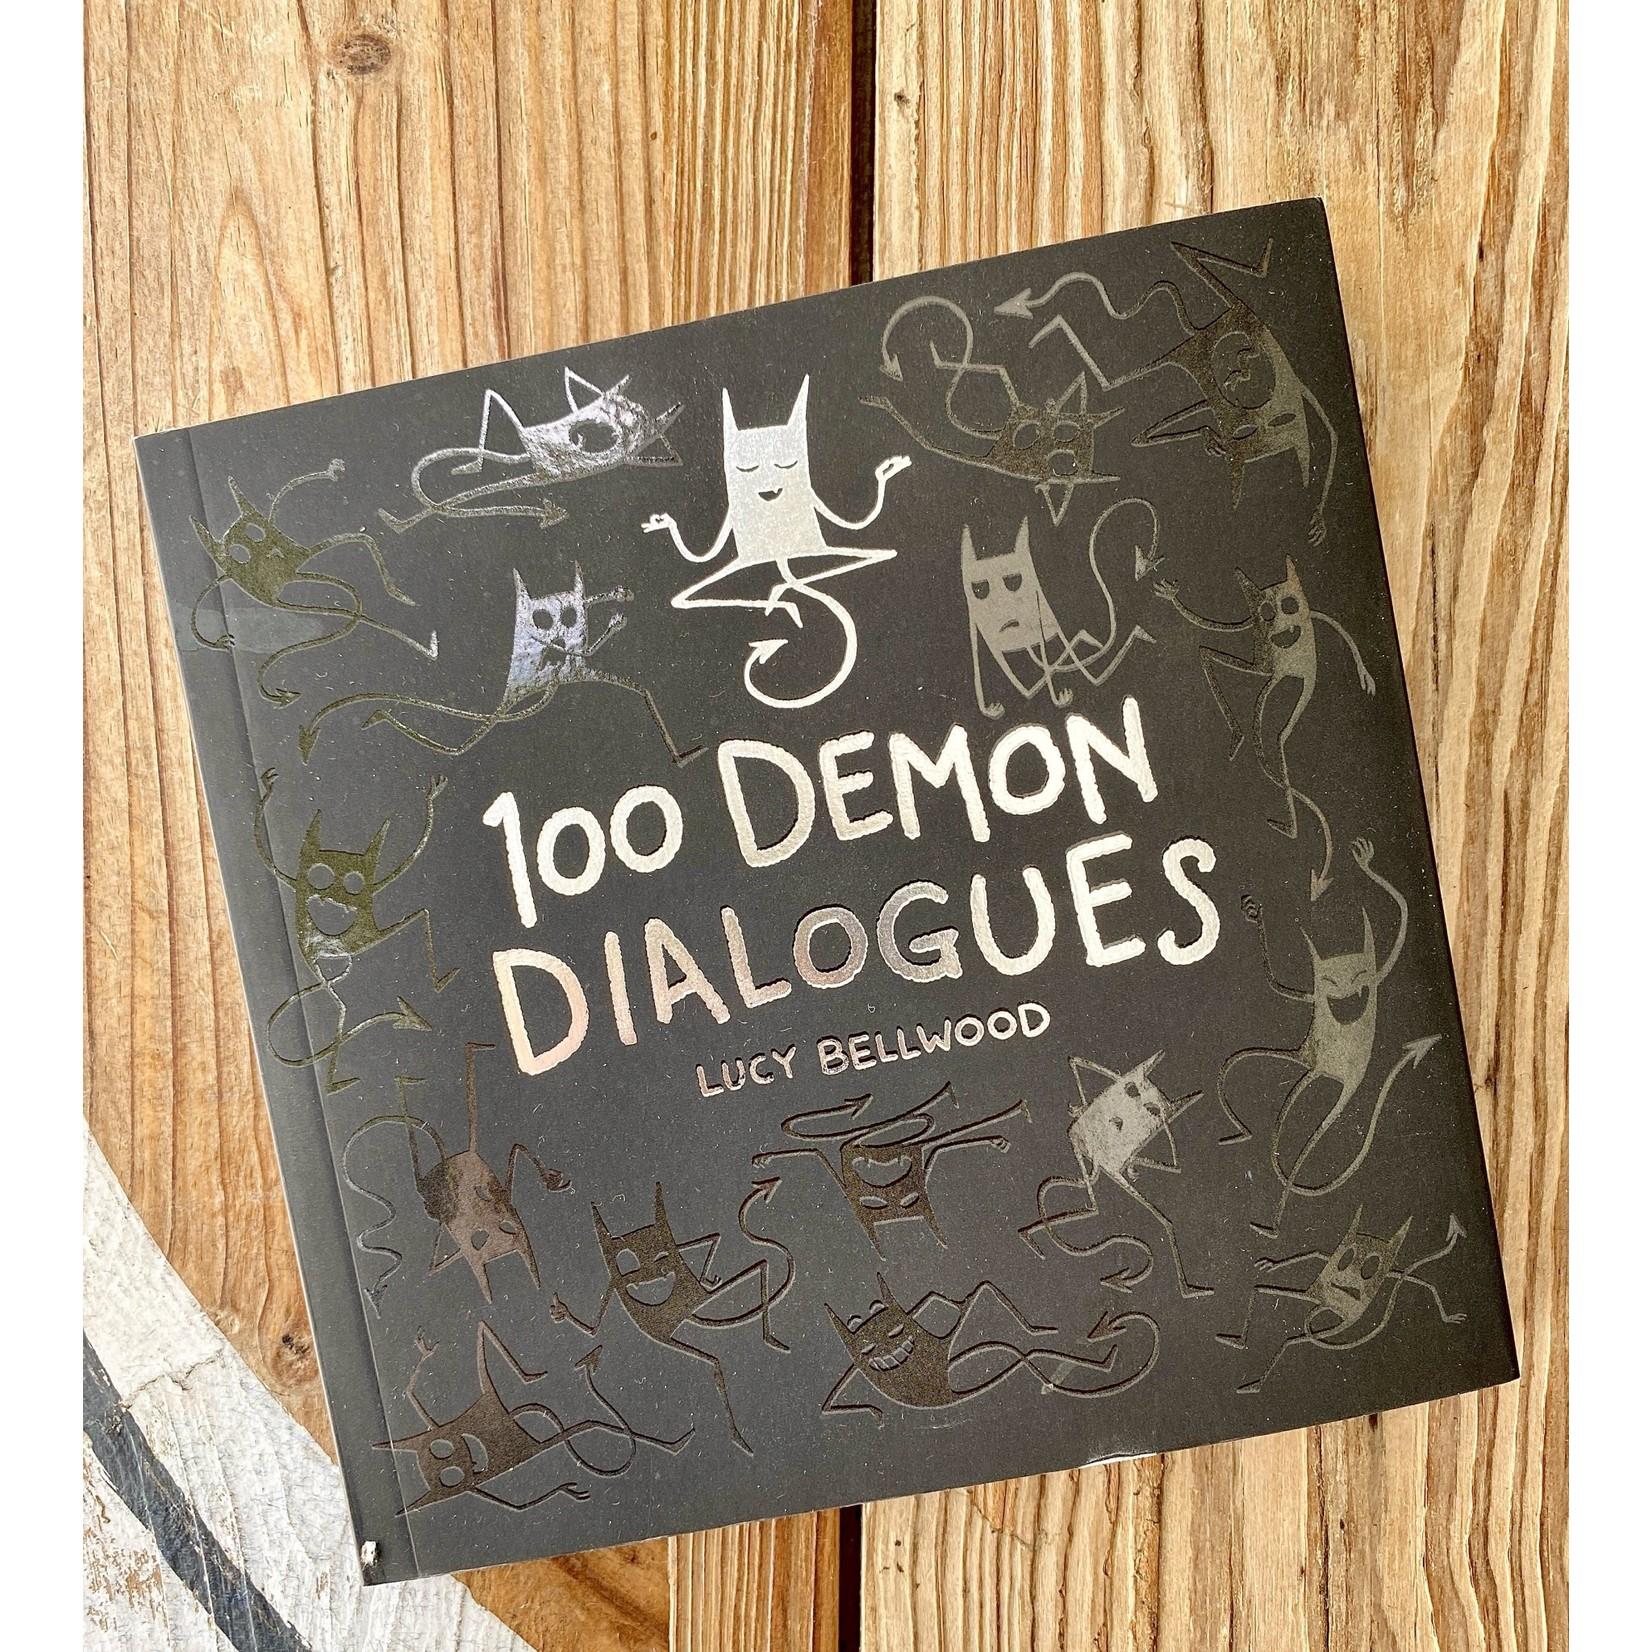 Lucy Bellwood 100 Demon Dialogues Softcover Book - Lucy Bellwood